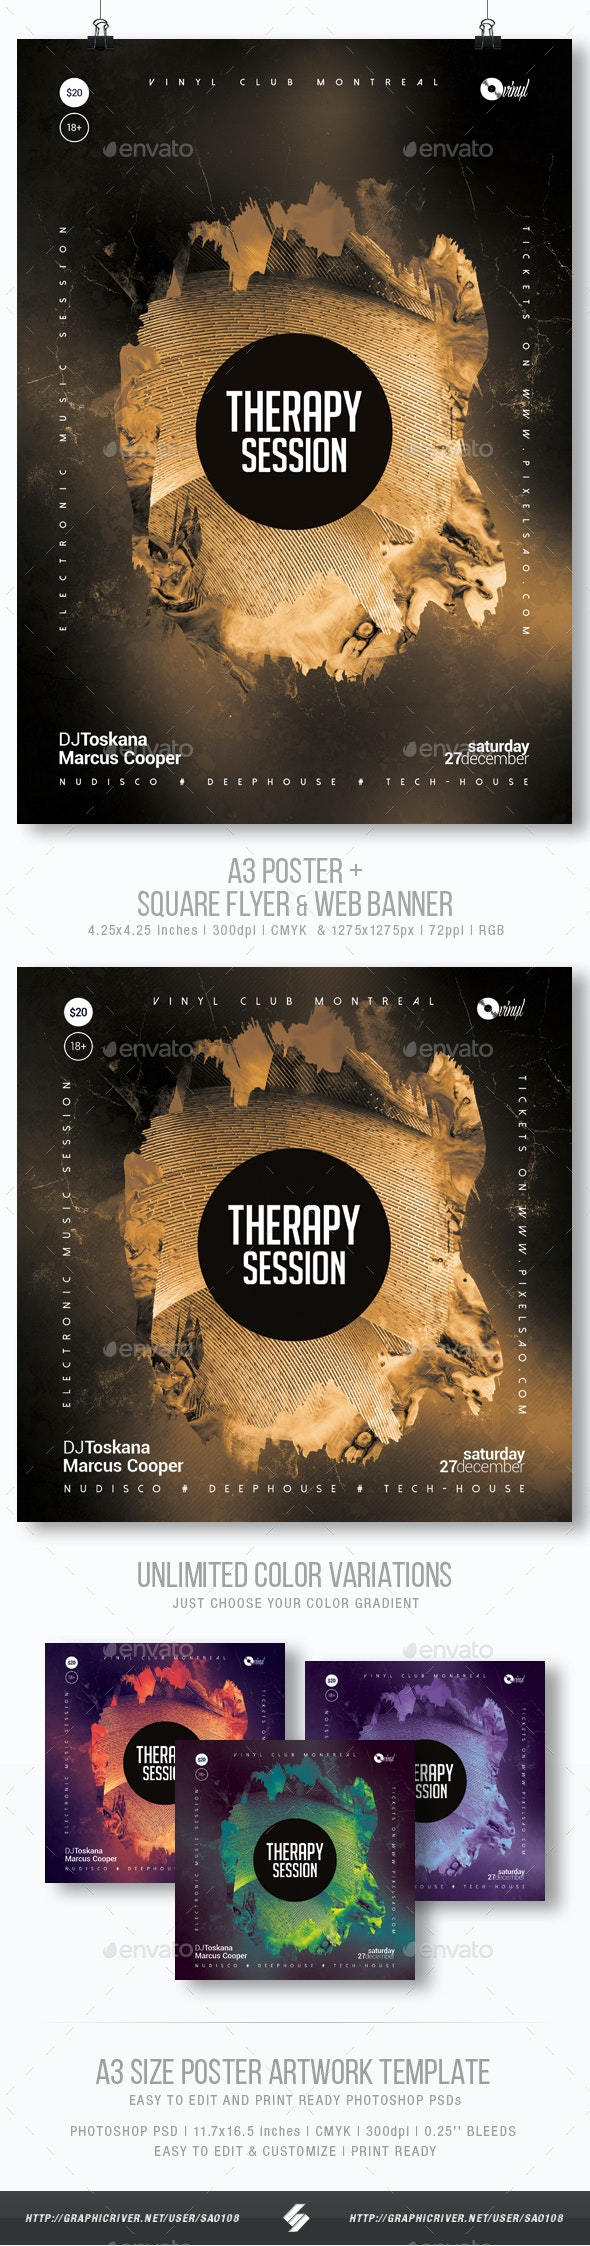 Therapy Session - Club Party Flyer / Poster Artwork Template A3 - Clubs & Parties Events